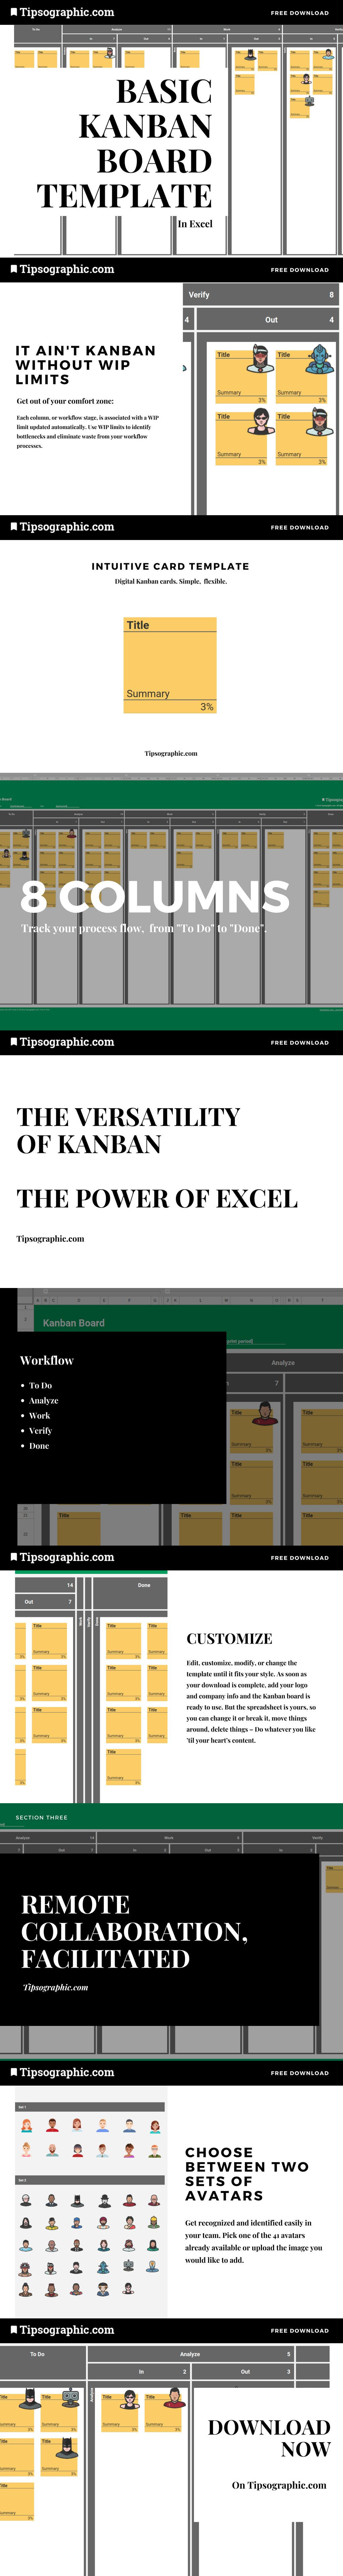 download here the best basic kanban board template for excel with wip limits tipsographic